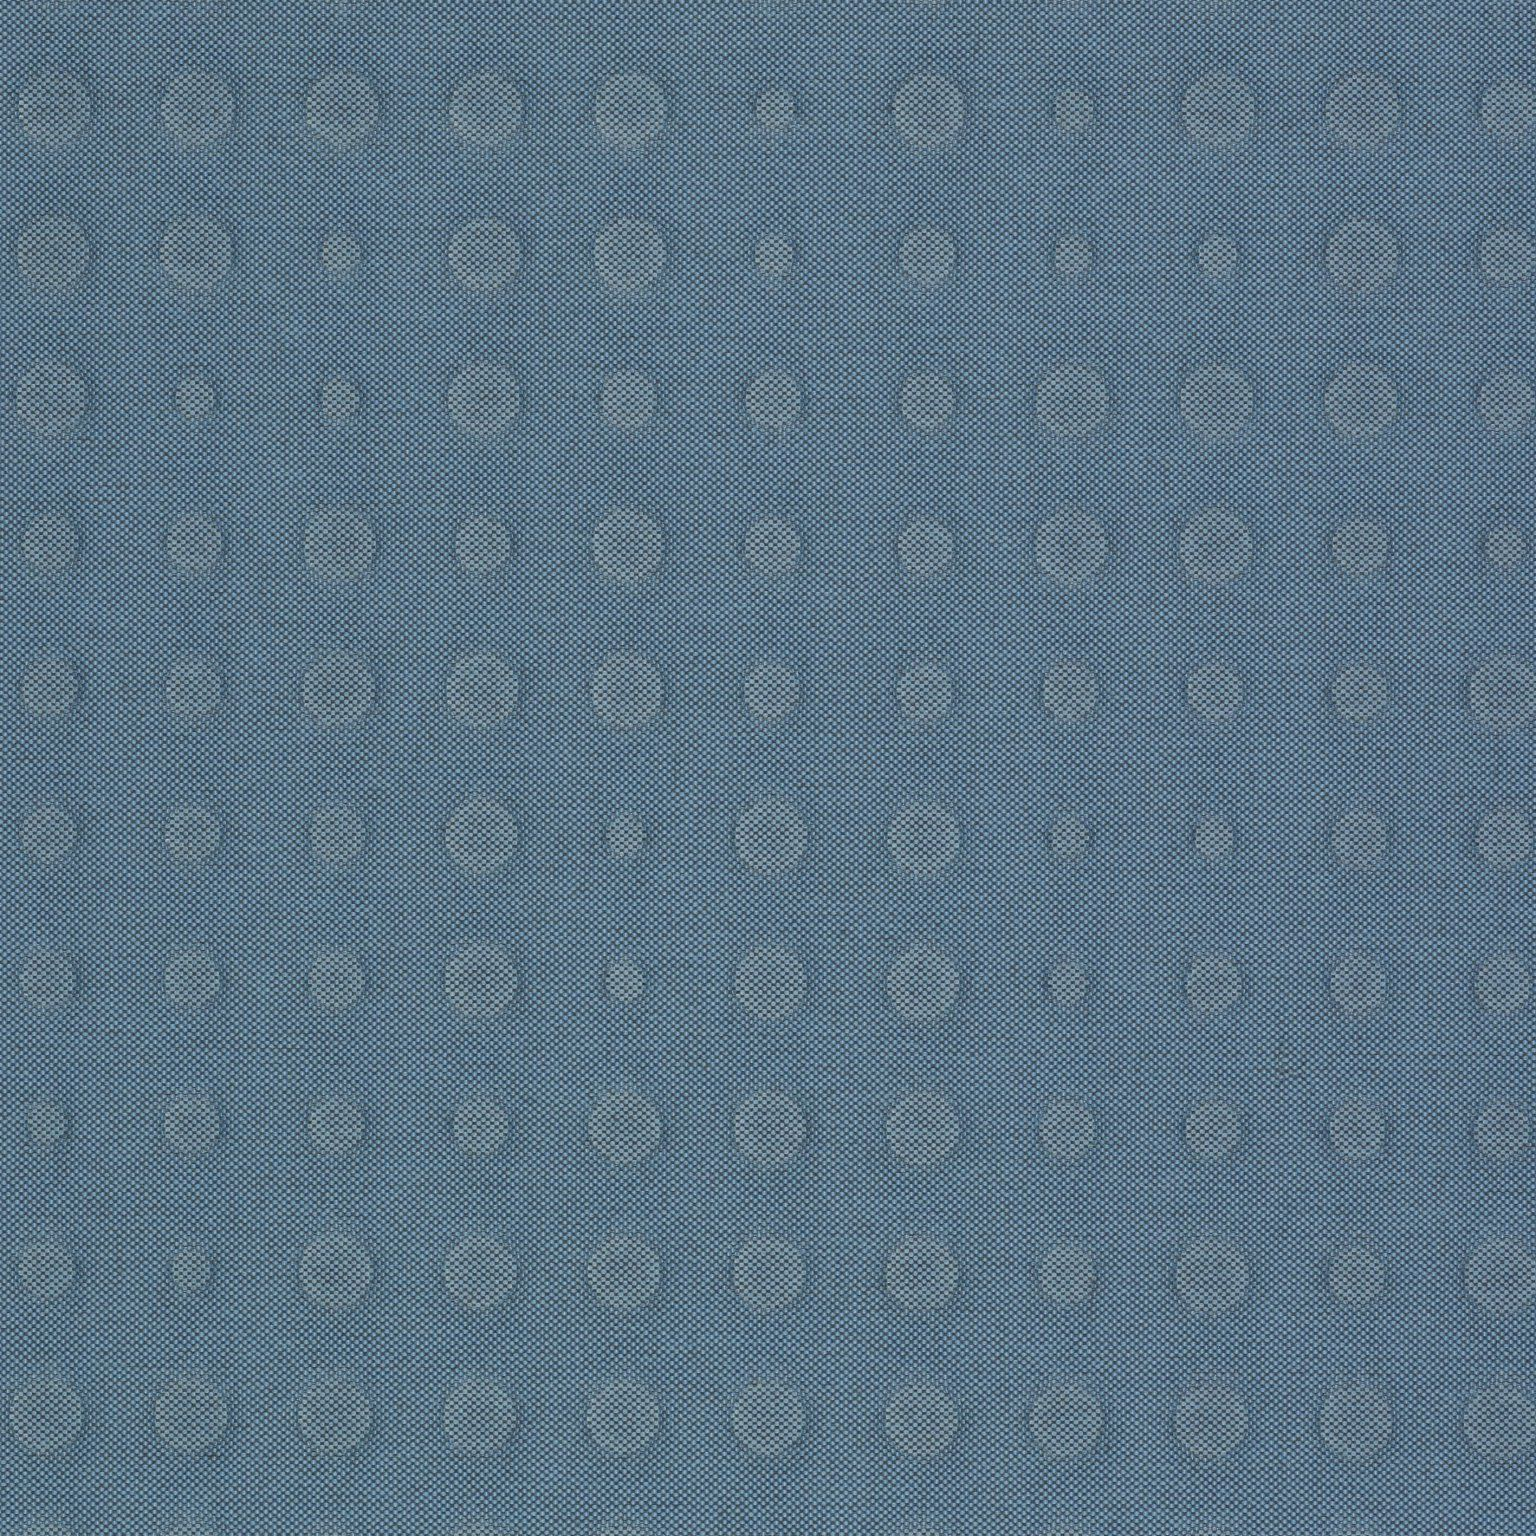 Kvadrat Upholstery Fabric Highfield Sky Blue Quilted Dots 3.375 yards 724 CI